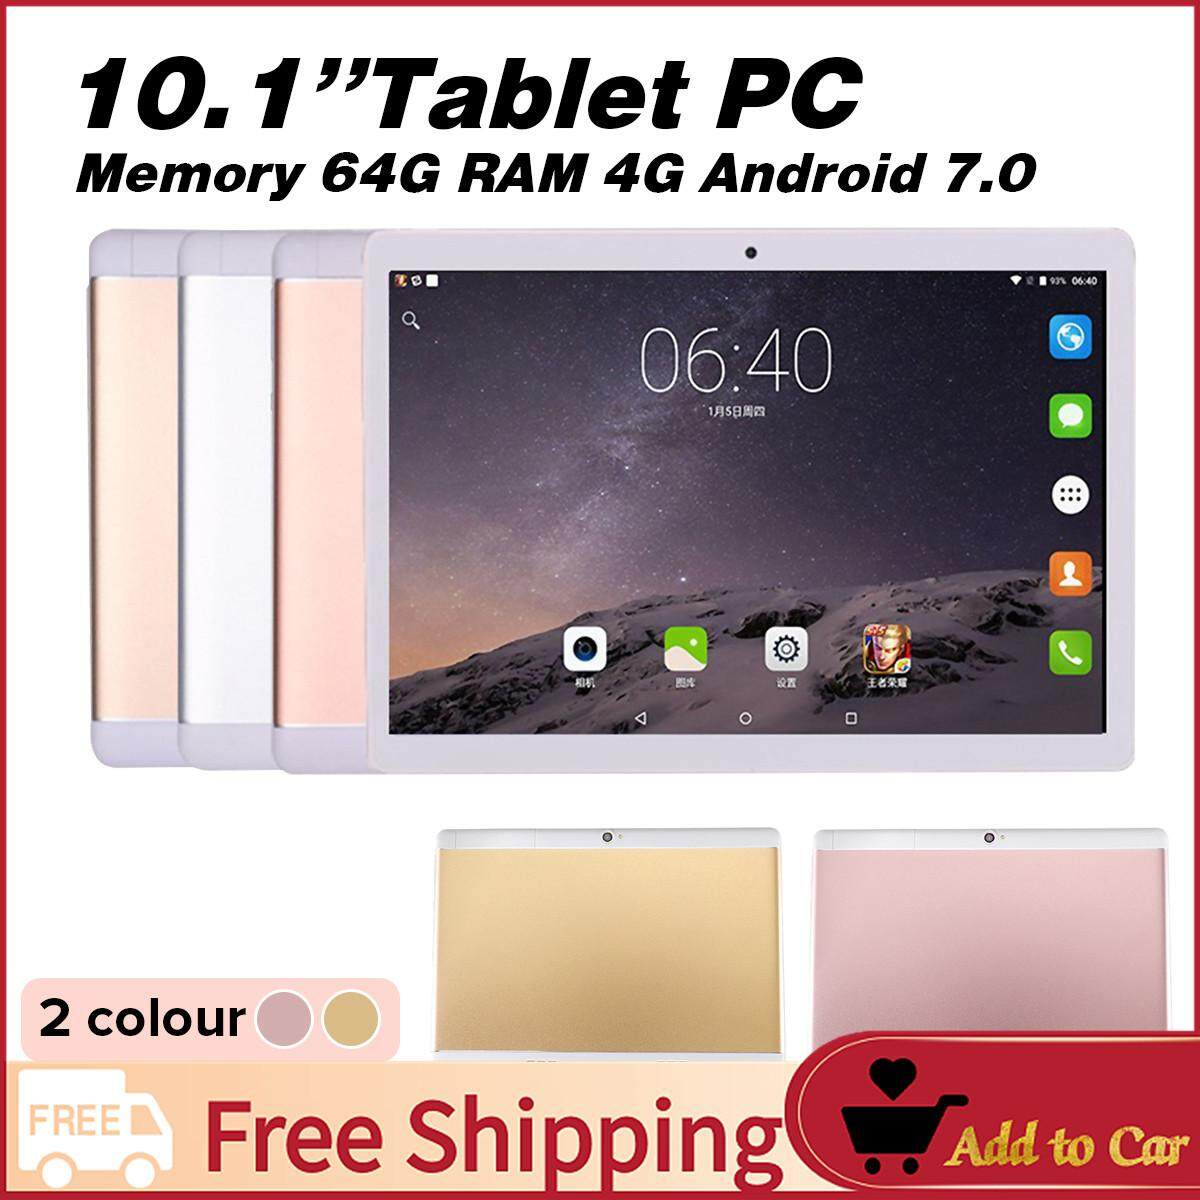 【free Shipping】new 10.1 Tablet Pc Android 6.0 Octa Core 64gb 10 Inch Hd Wifi 2 Sim 3g Phablet By Freebang.